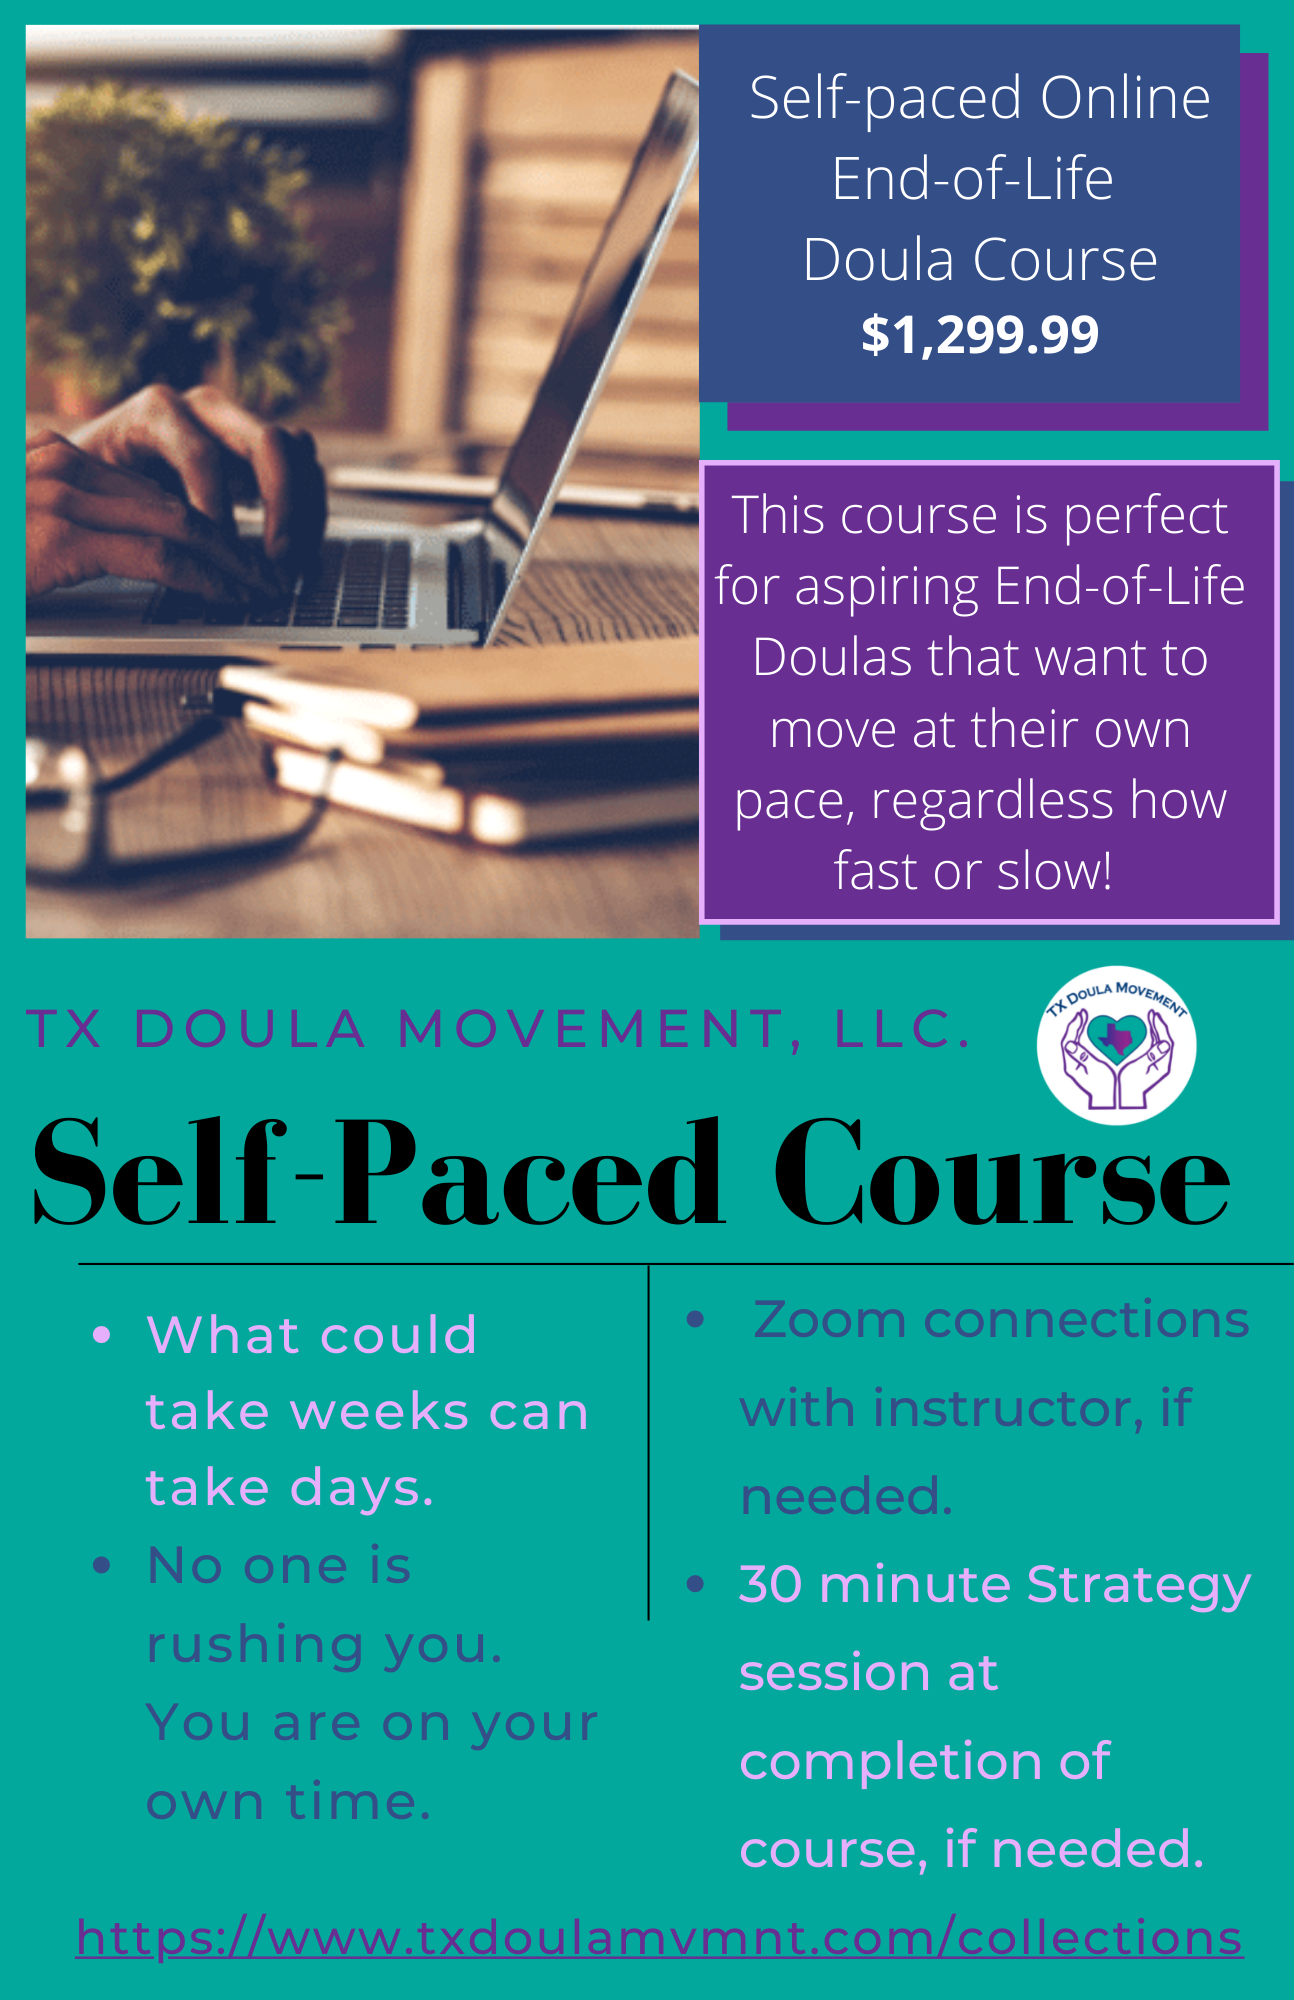 Self-Paced End-of-Life Doula Course